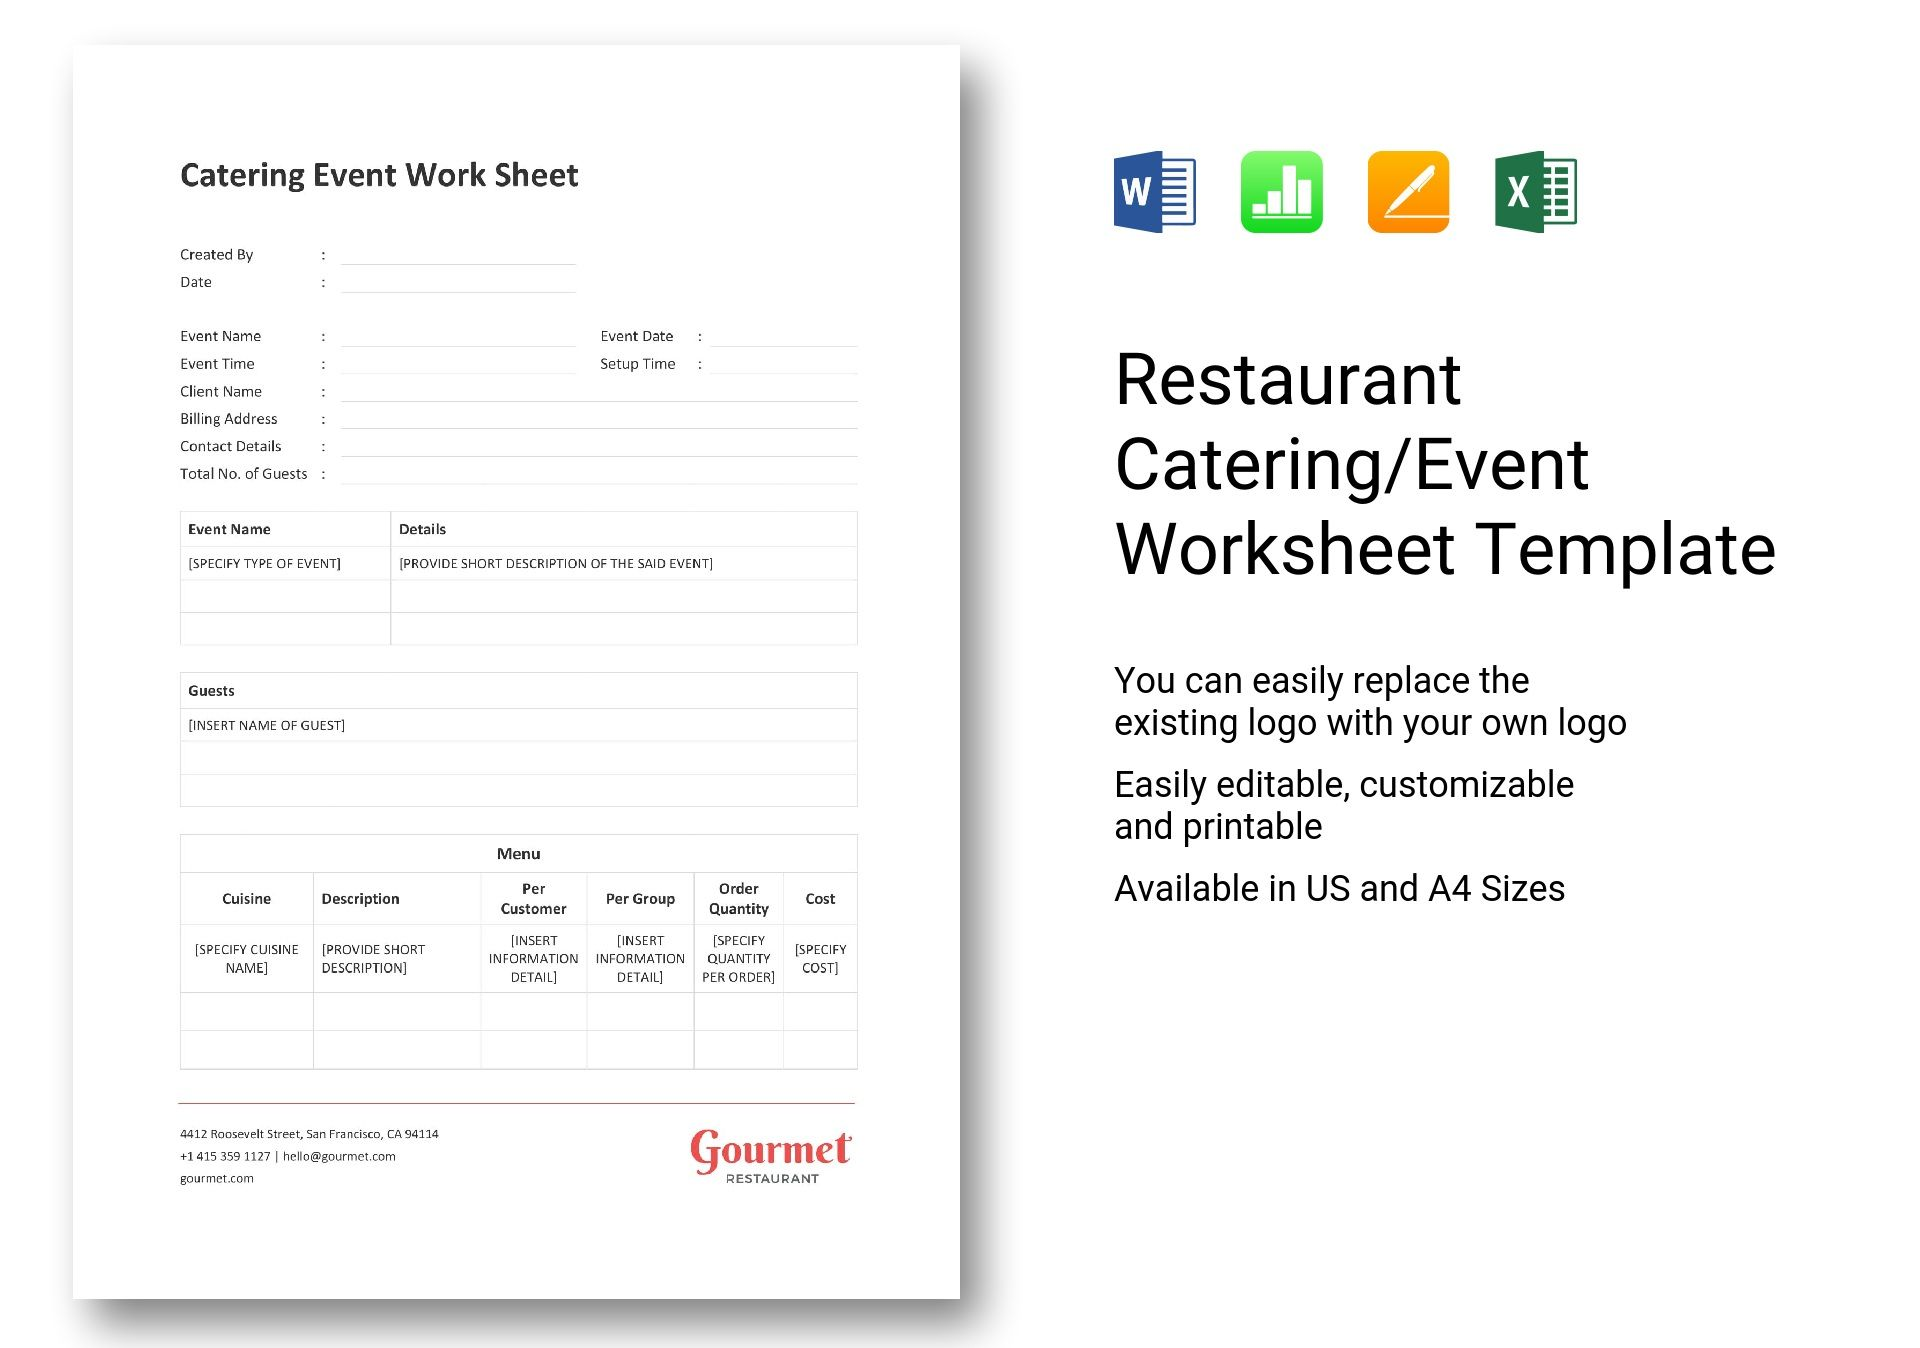 Restaurant Catering Event Worksheet Template